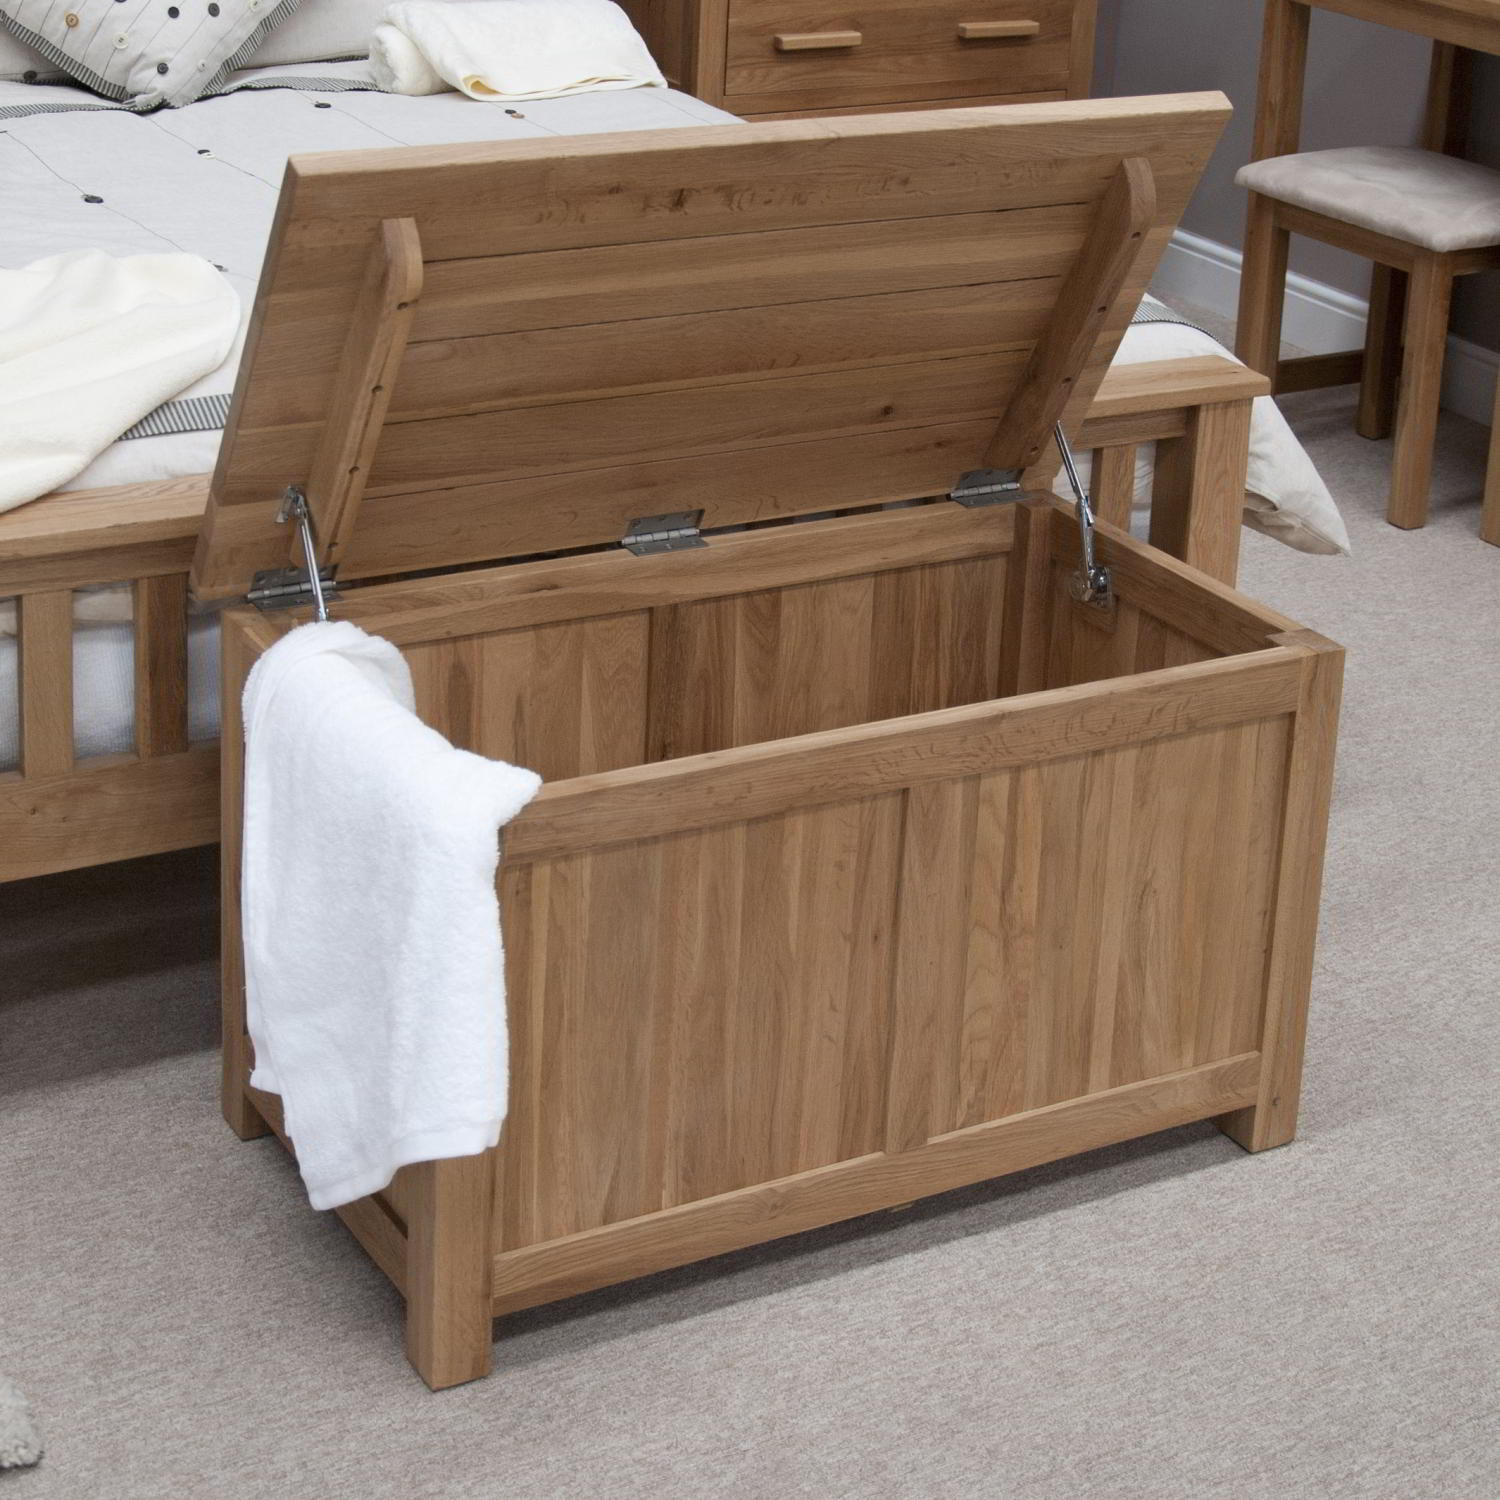 Eton solid oak bedroom furniture blanket storage box chest for Solid oak furniture